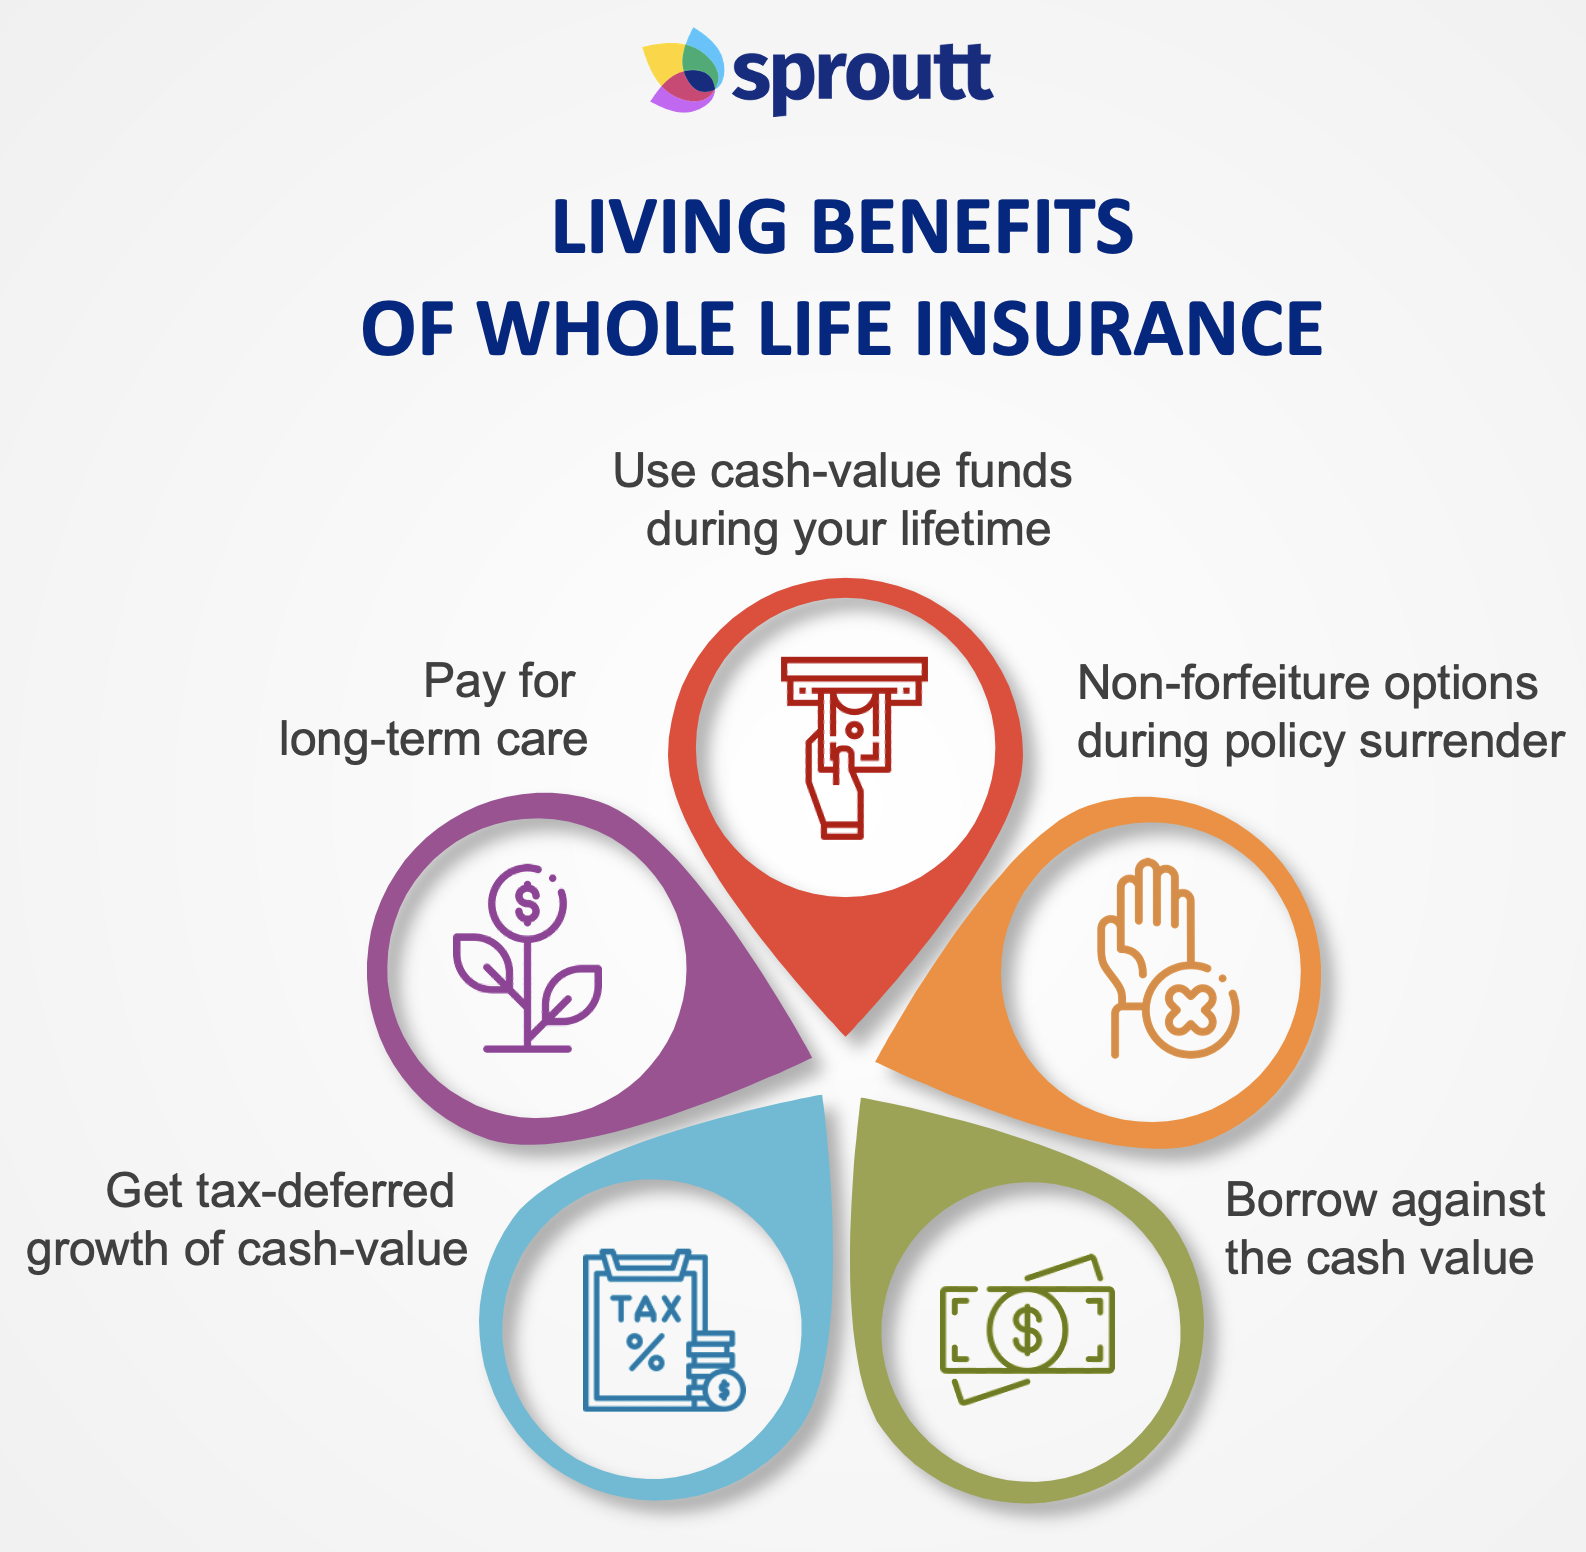 Living benefits of whole life insurance